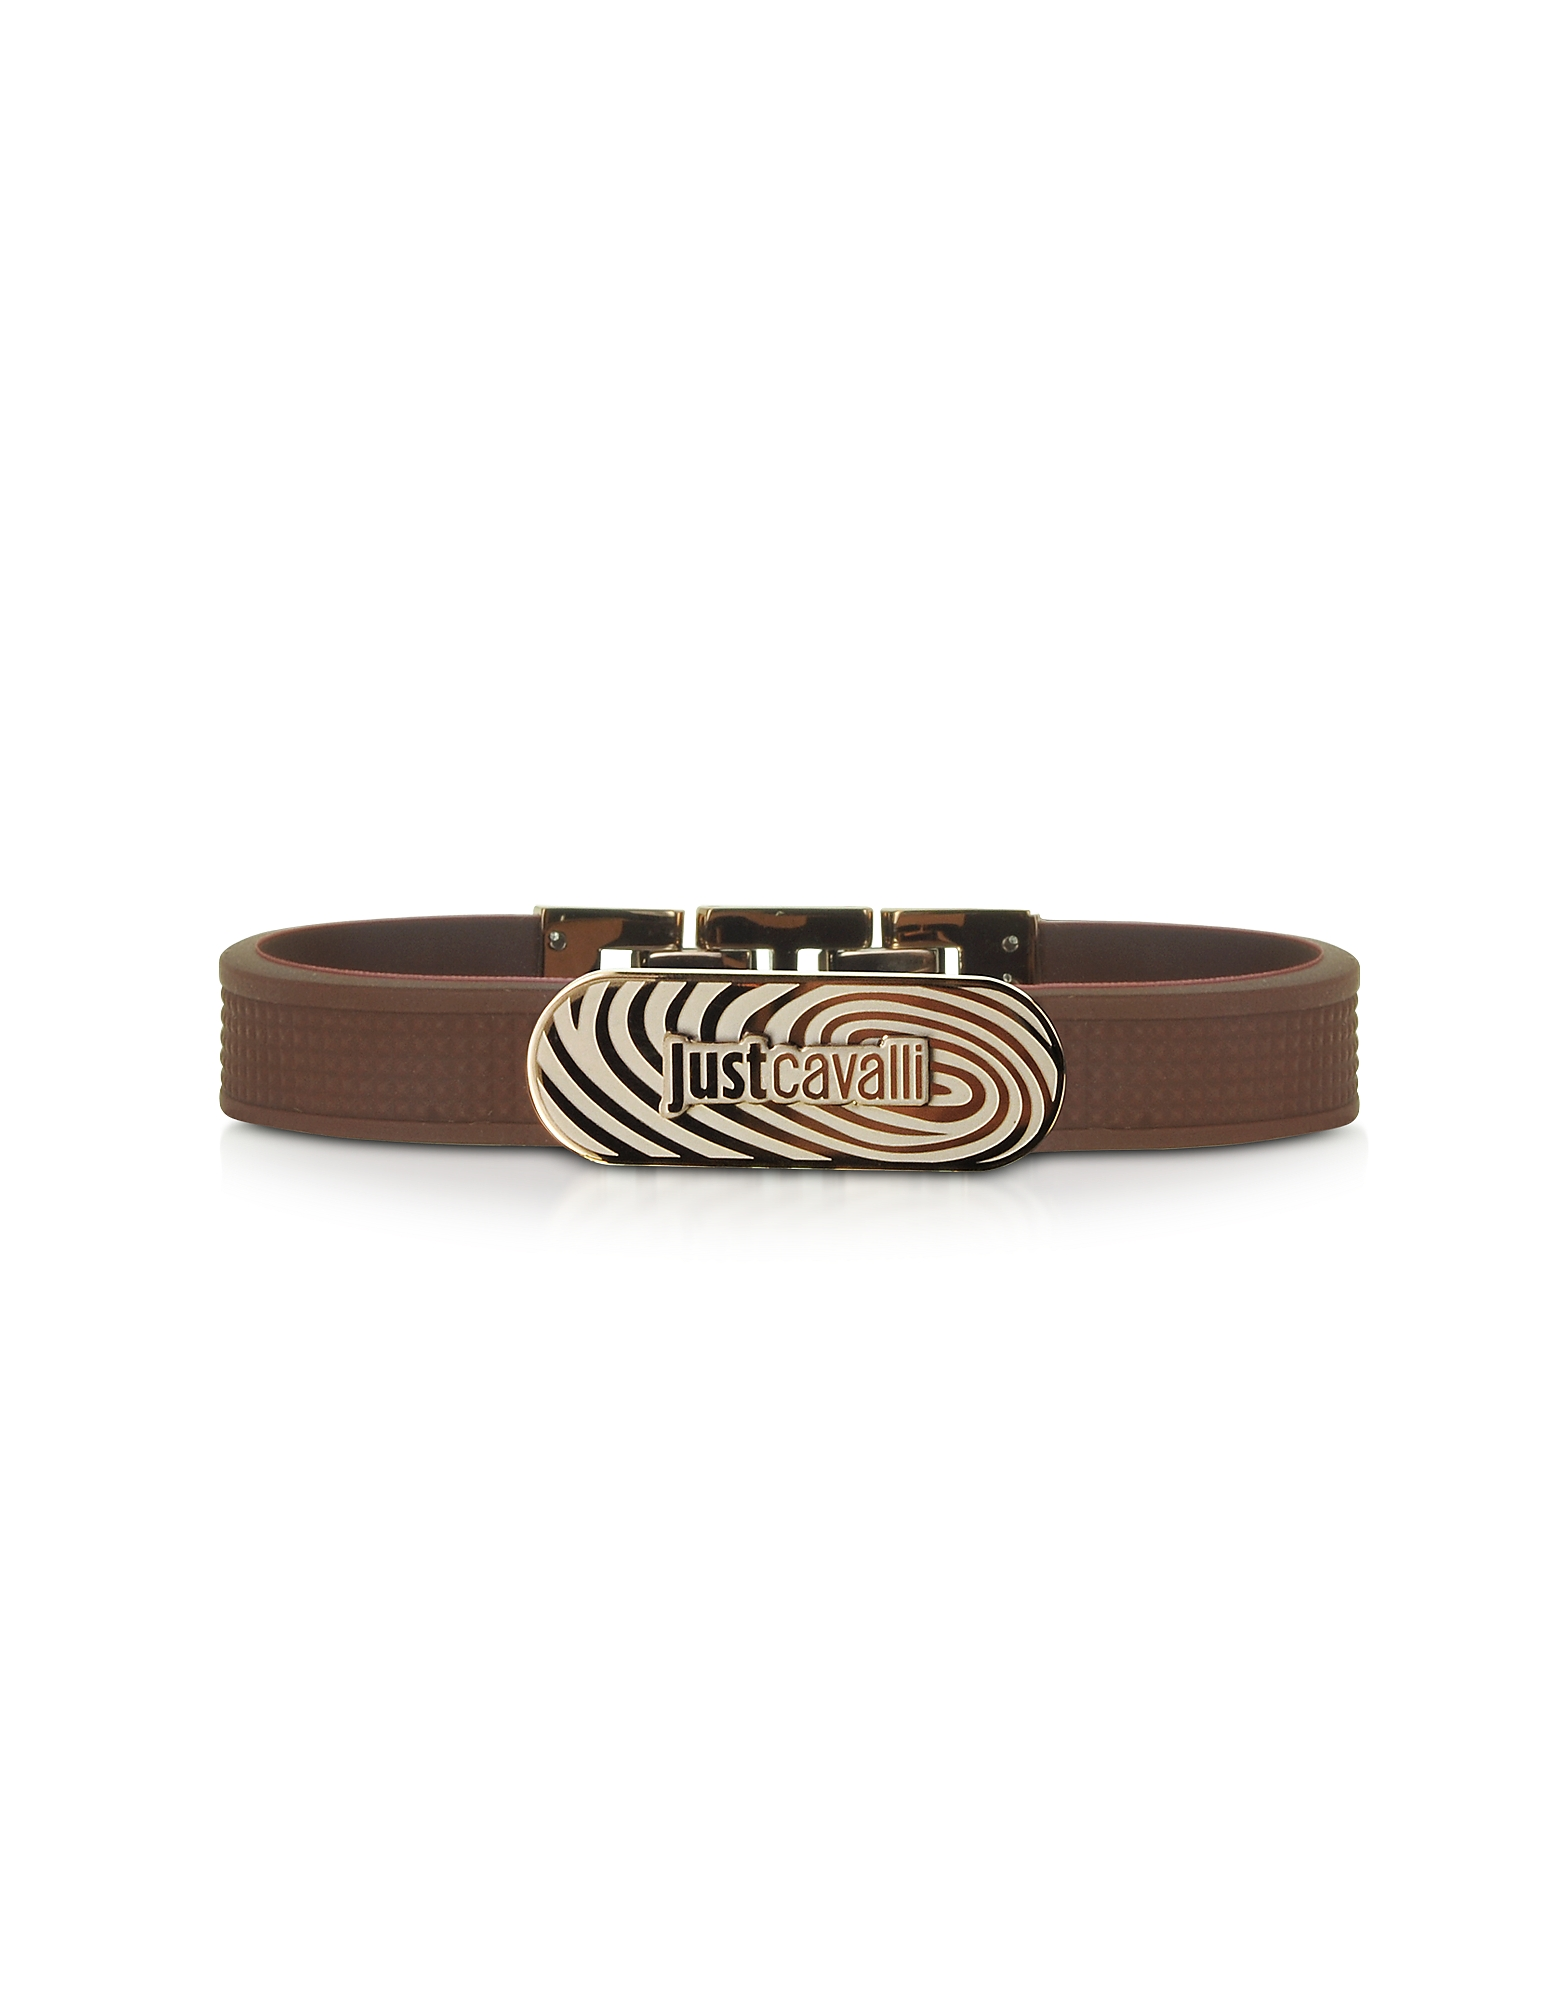 Just Cavalli Men's Bracelets, Touch Brown Silicon Men's Bracelet